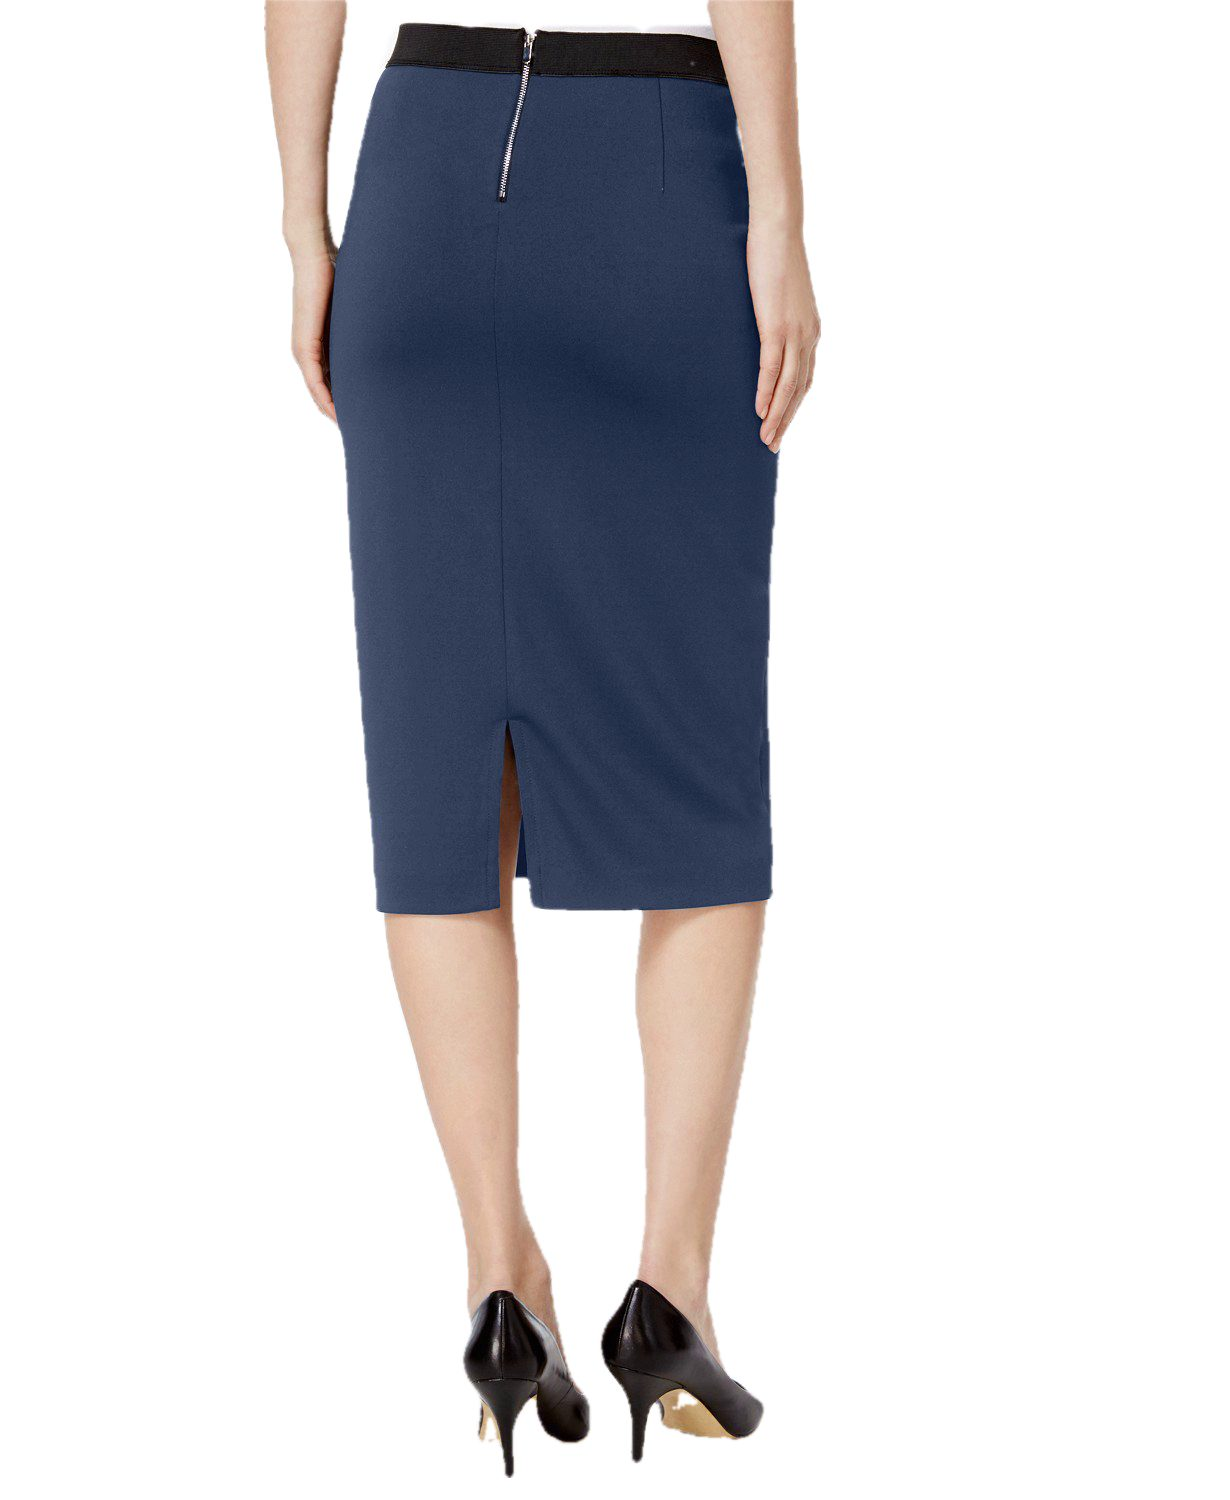 Knee Length Pencil Skirt in Charcoal Grey